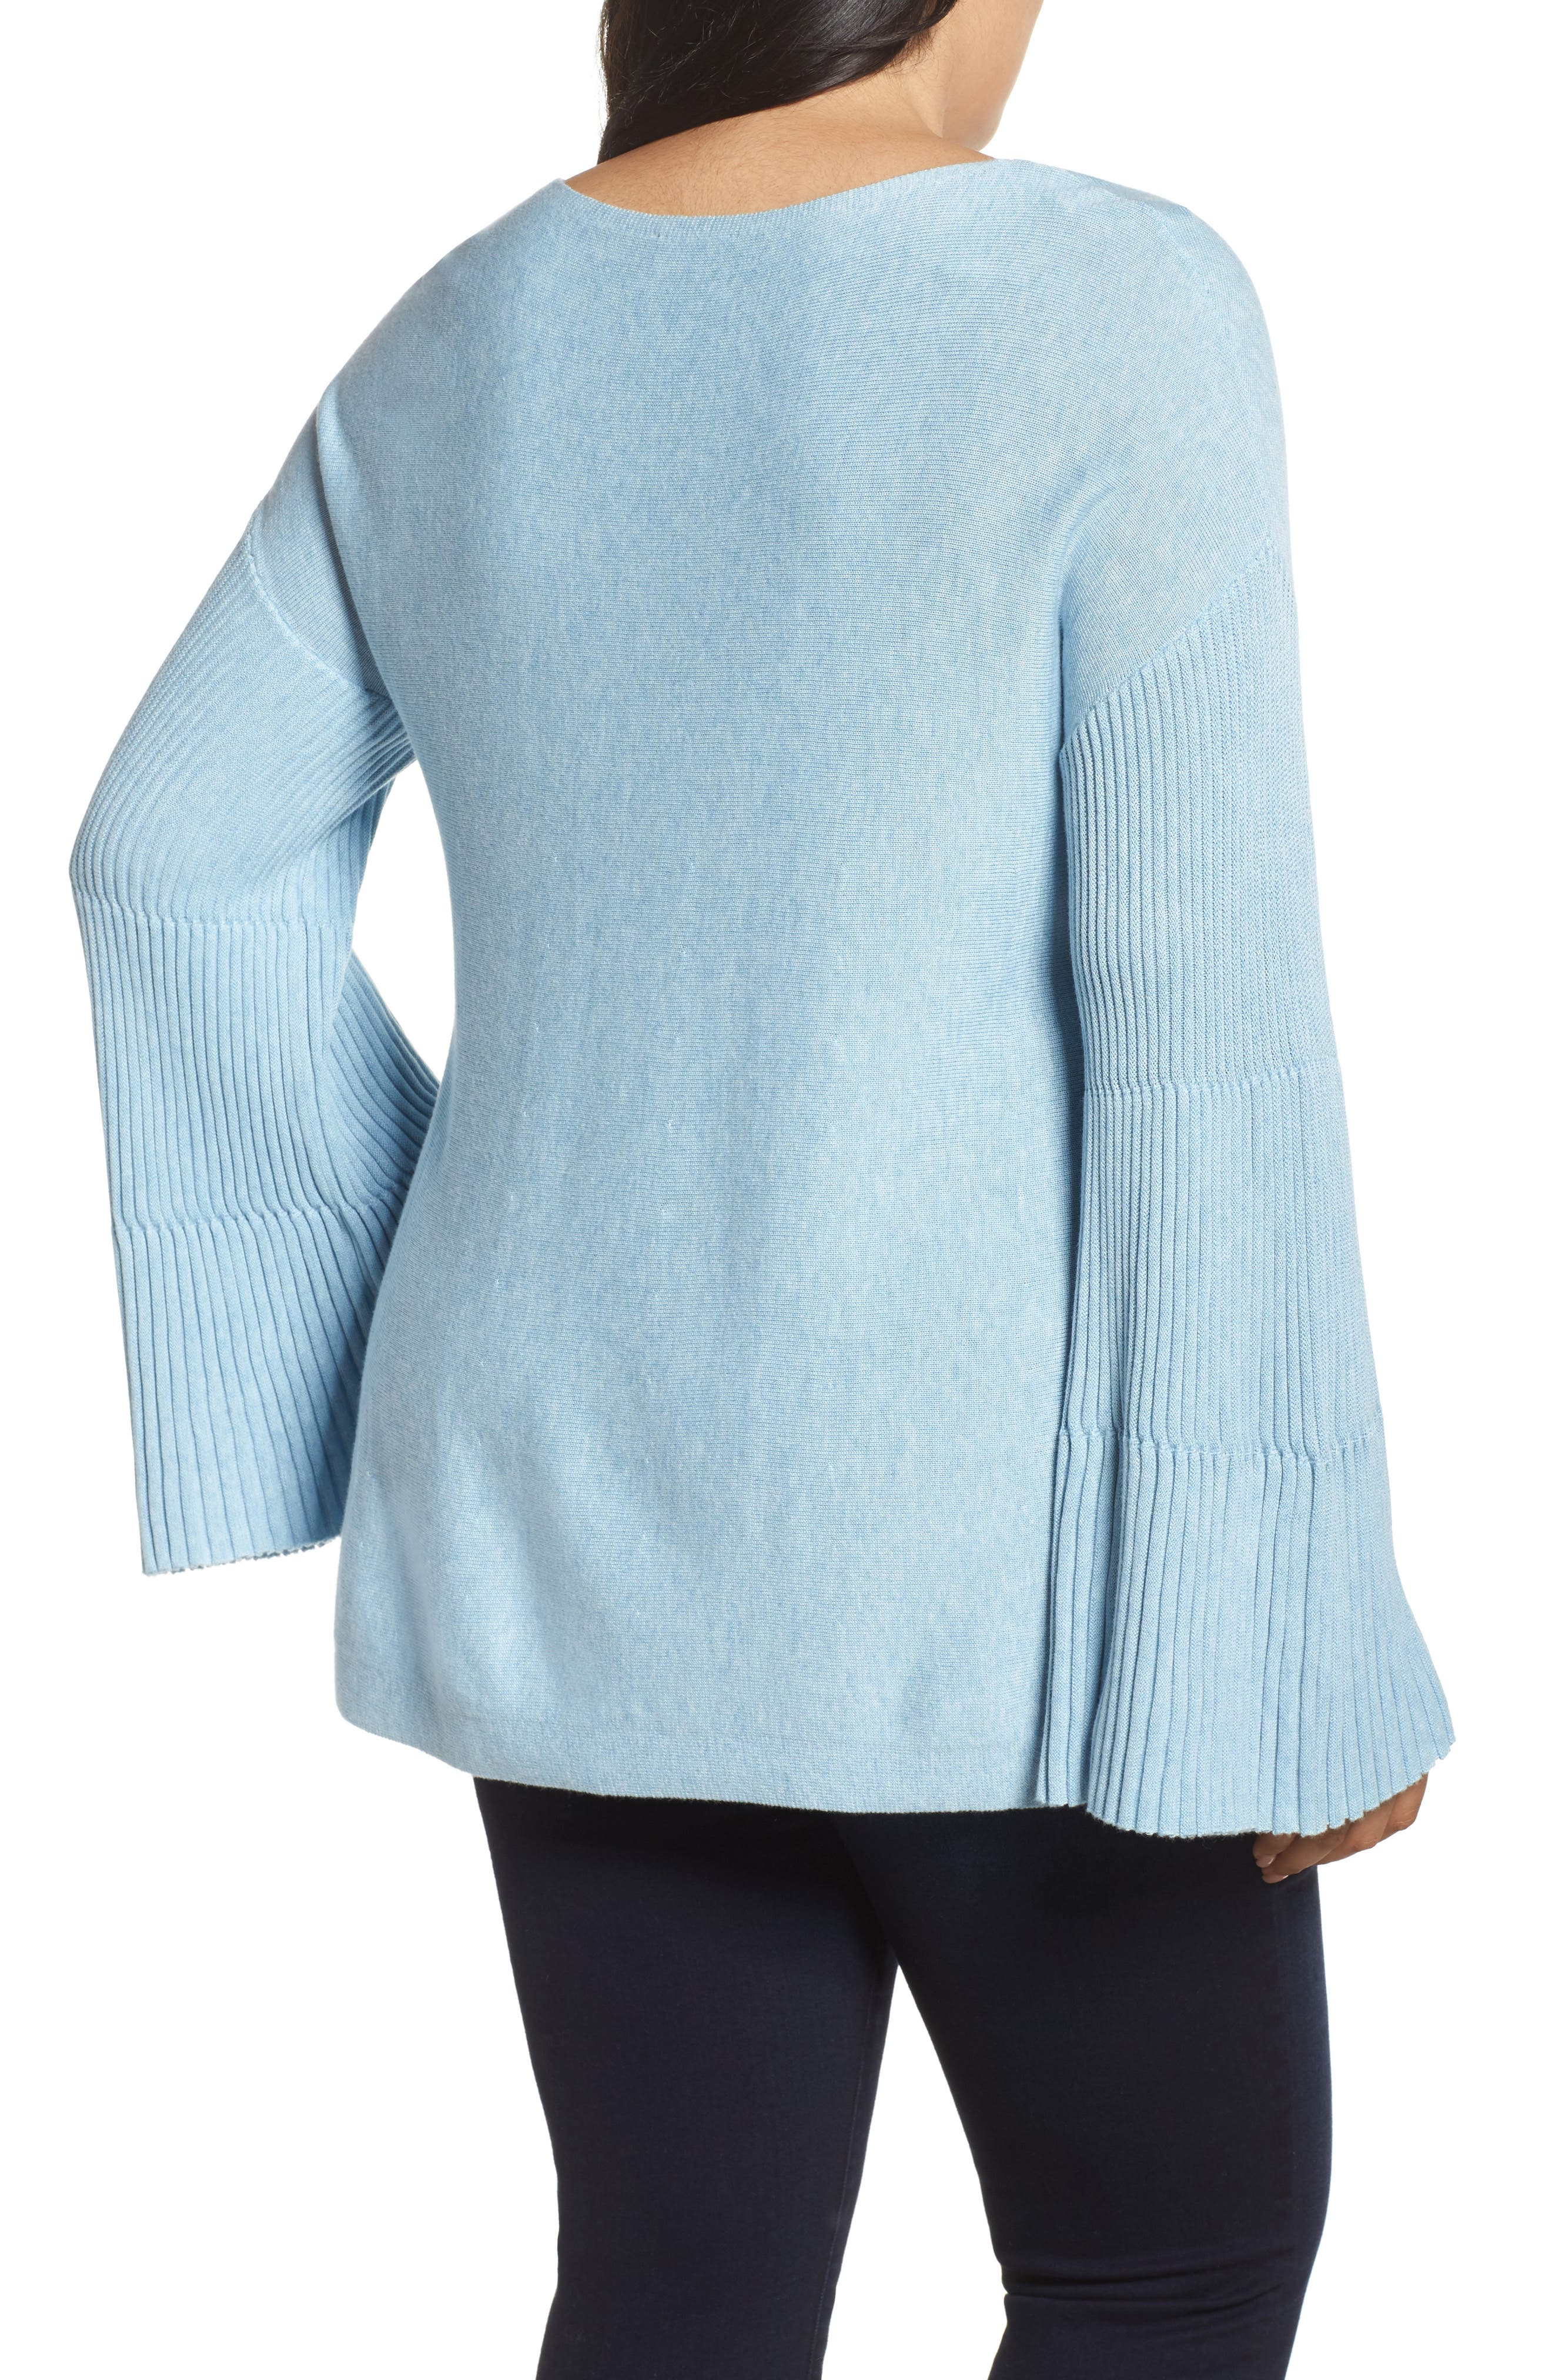 Alternate Image 2  - Vince Camuto Ribbed Bell Sleeve Sweater (Plus Size)